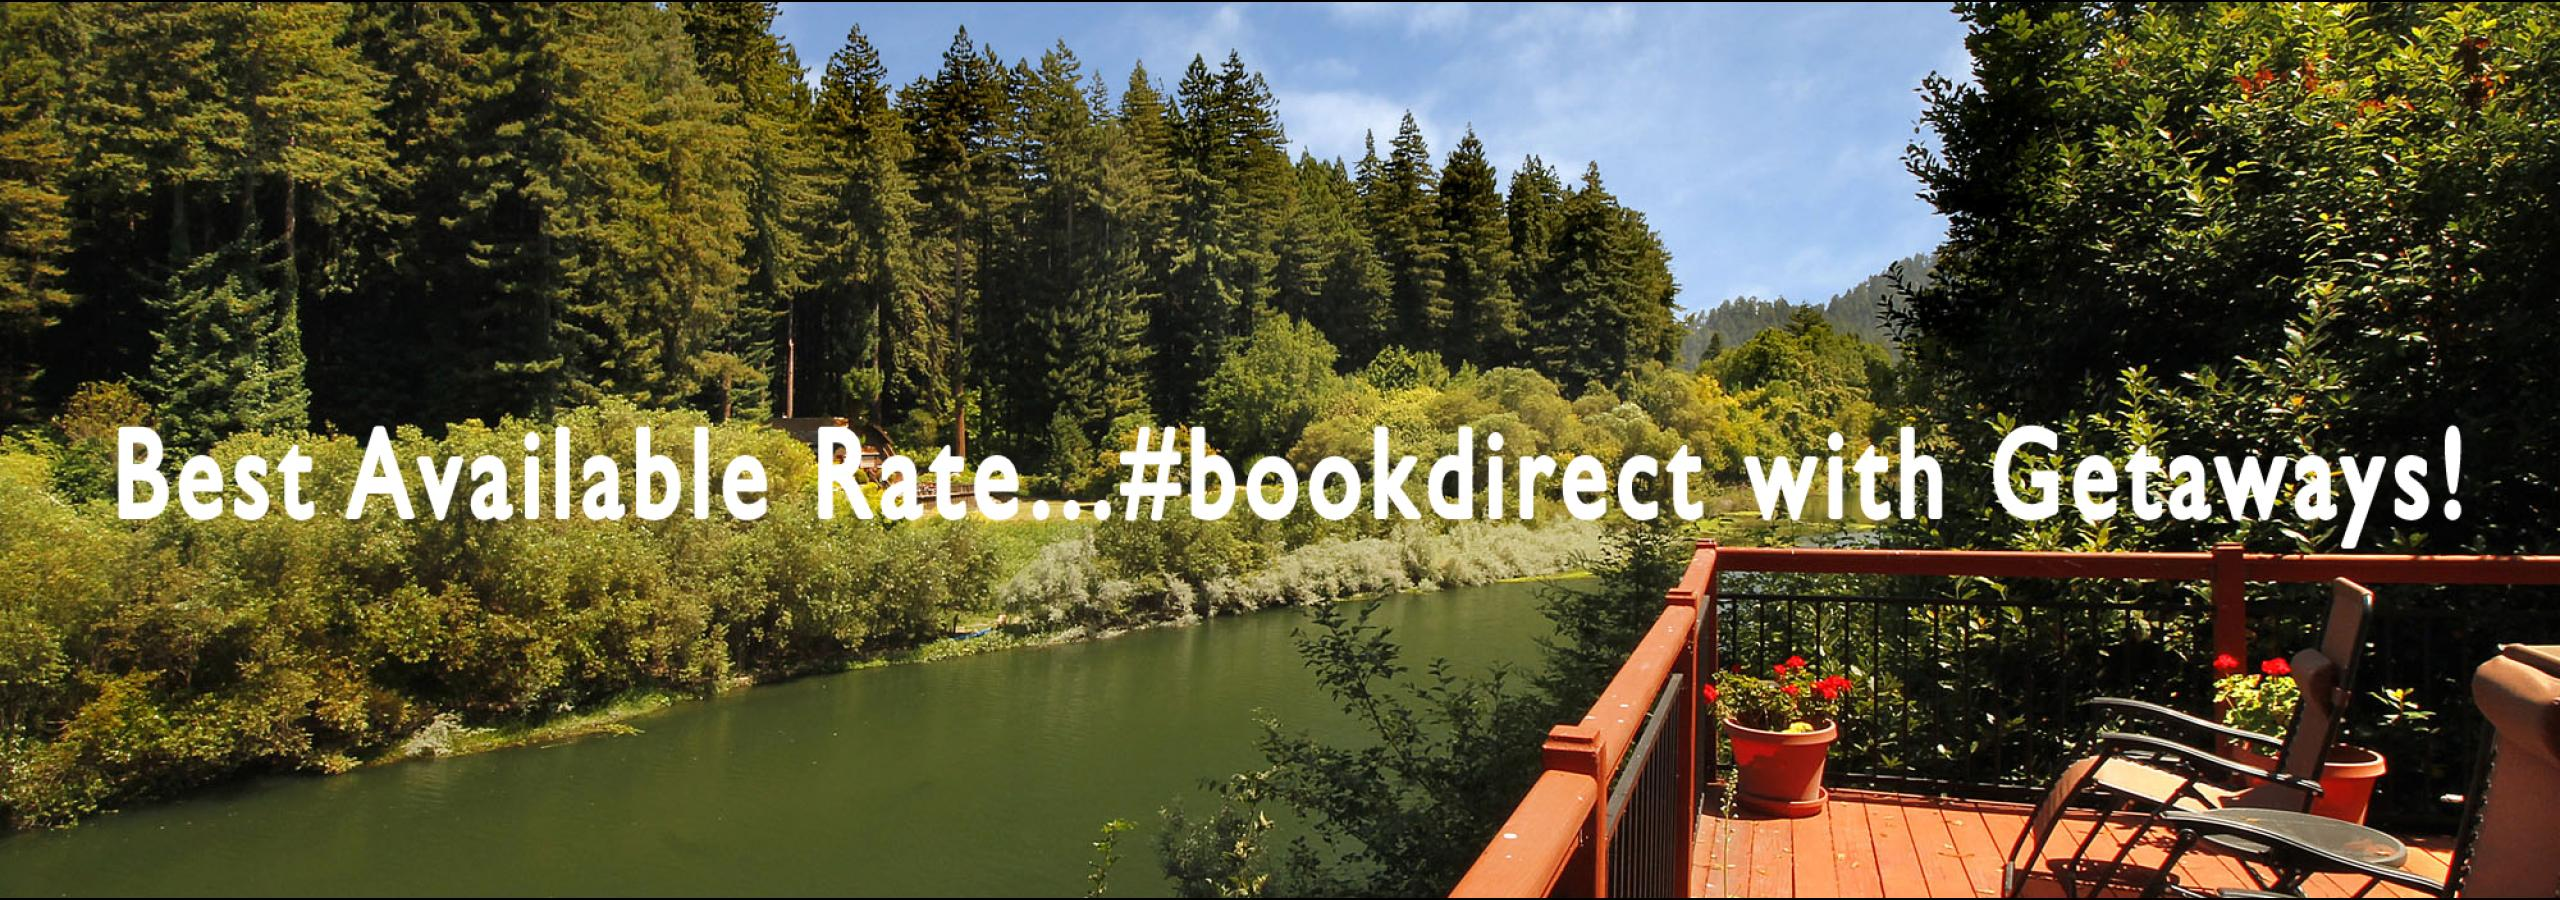 Best Available Rate #book direct